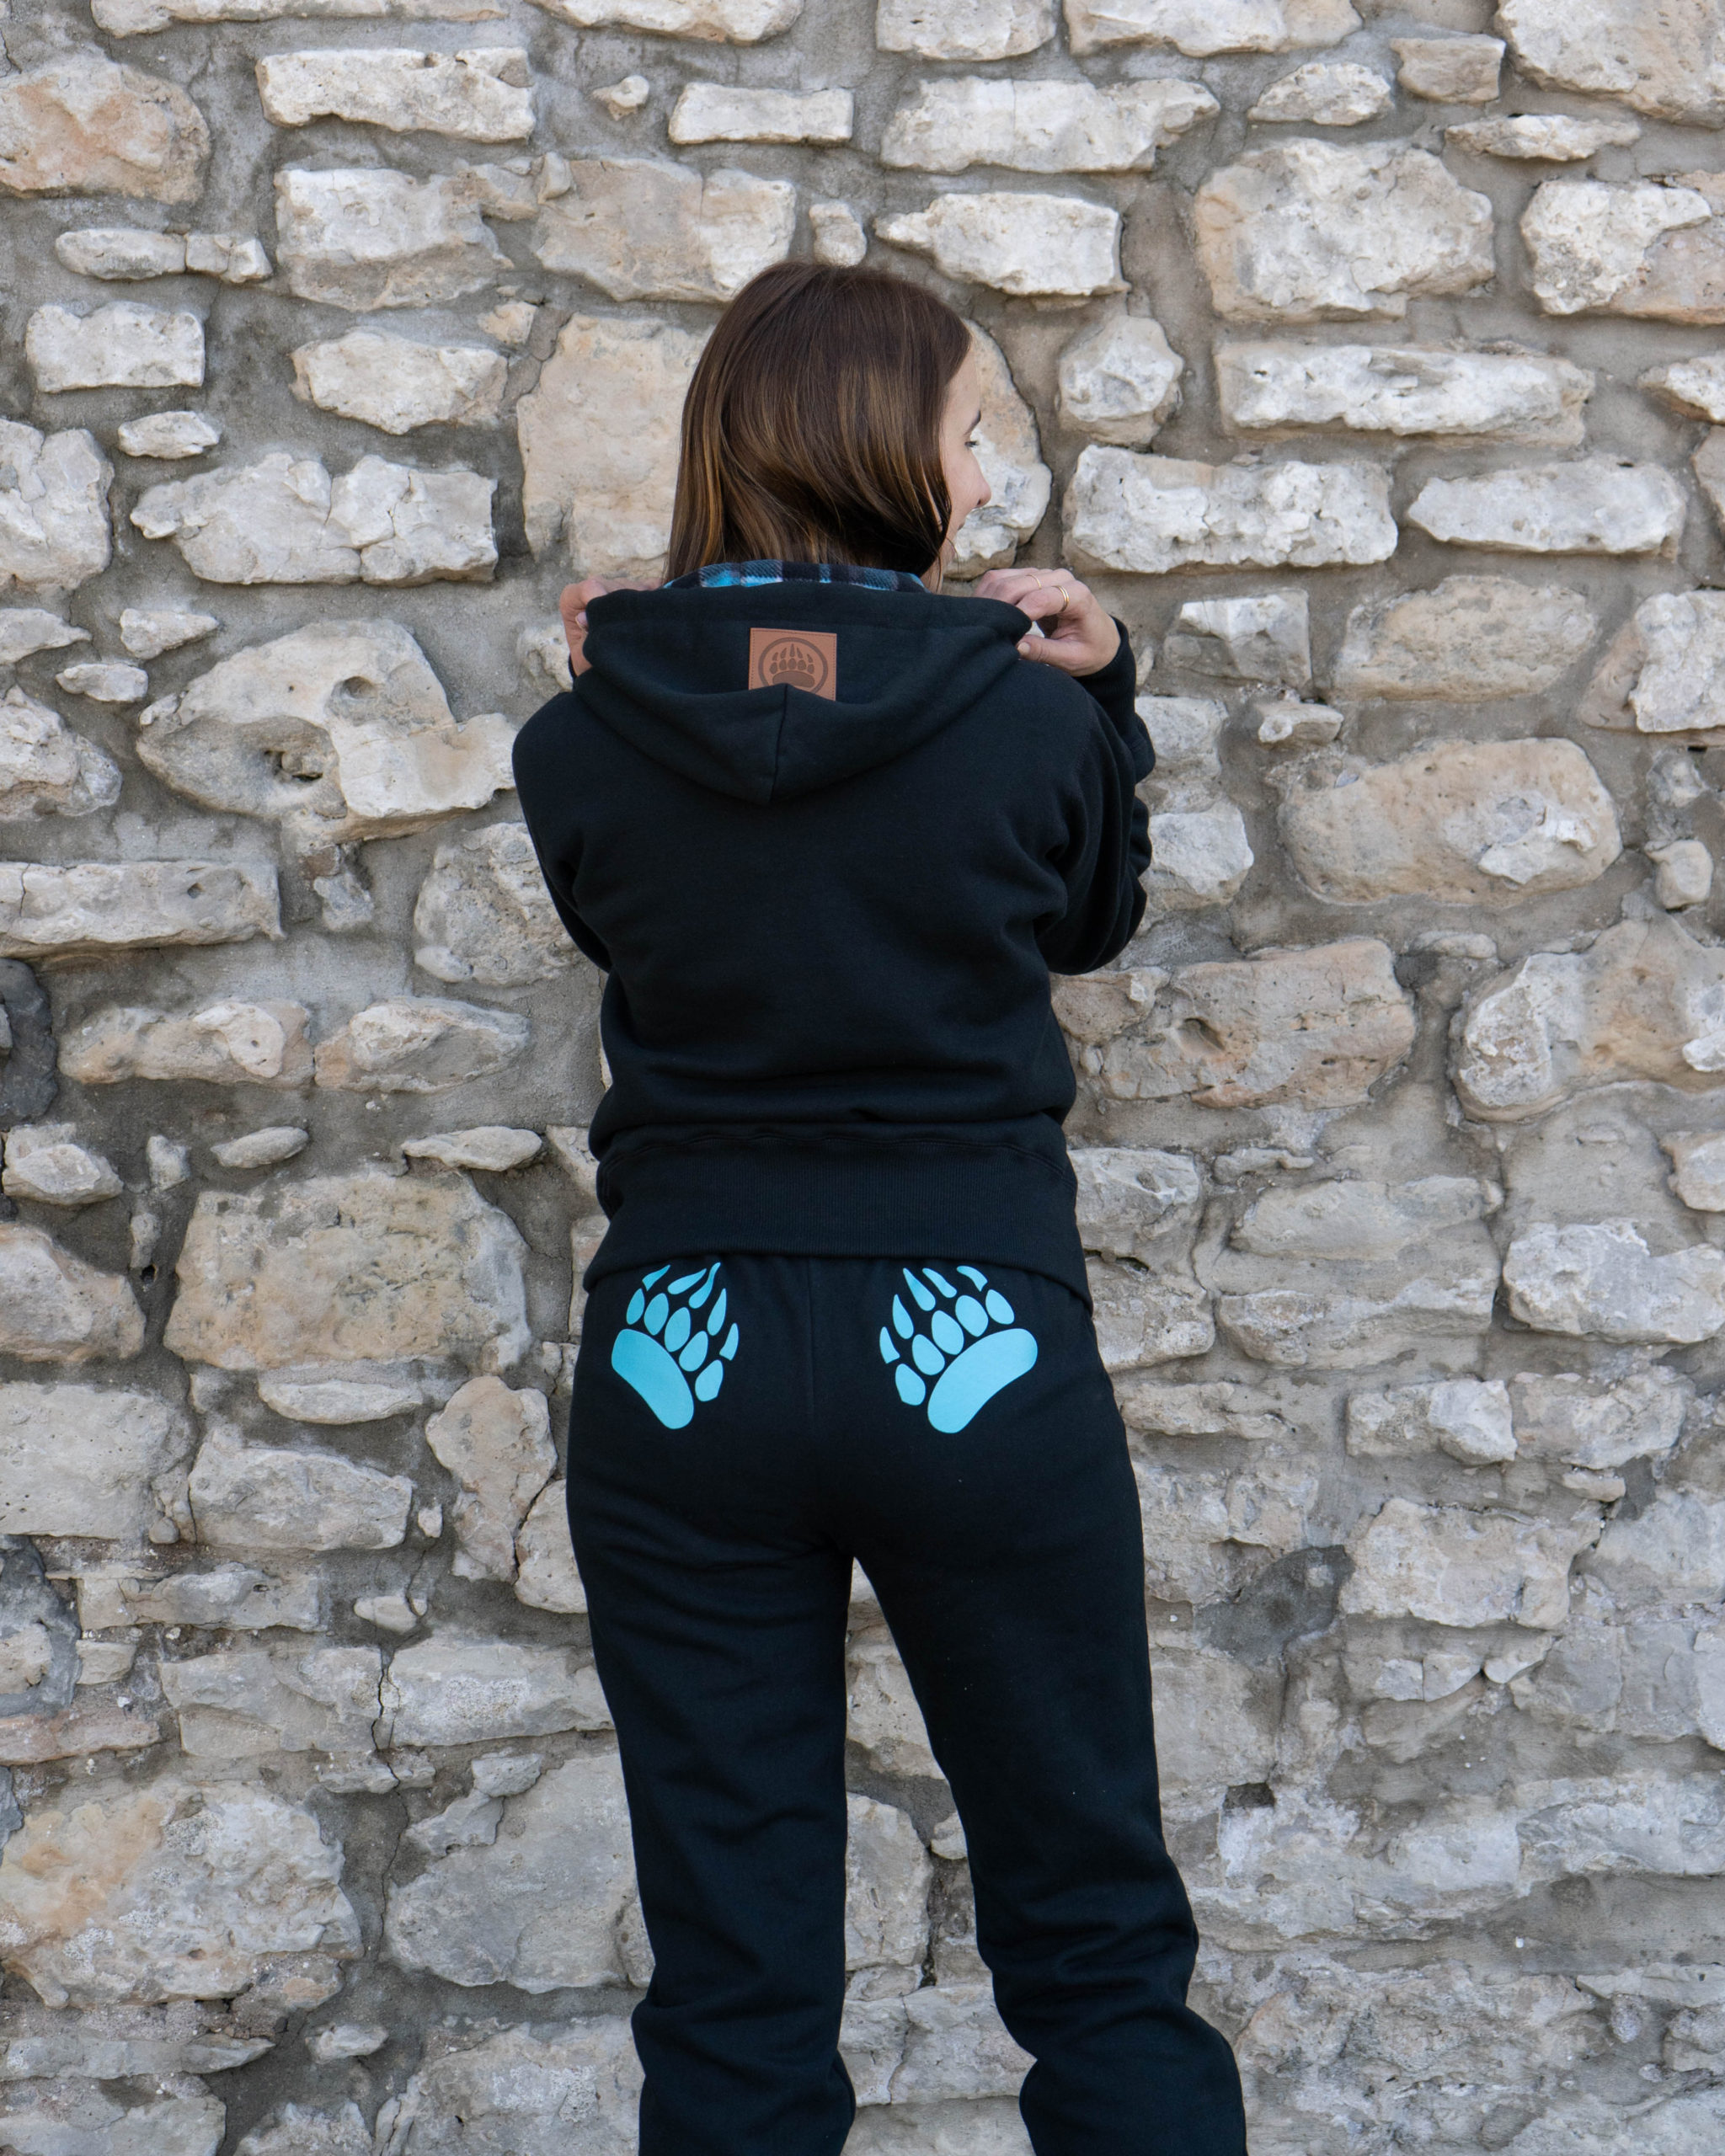 Content Creator Em wearing the Black with Aqua Ladies Cabin Hoody and Original Paw Pants